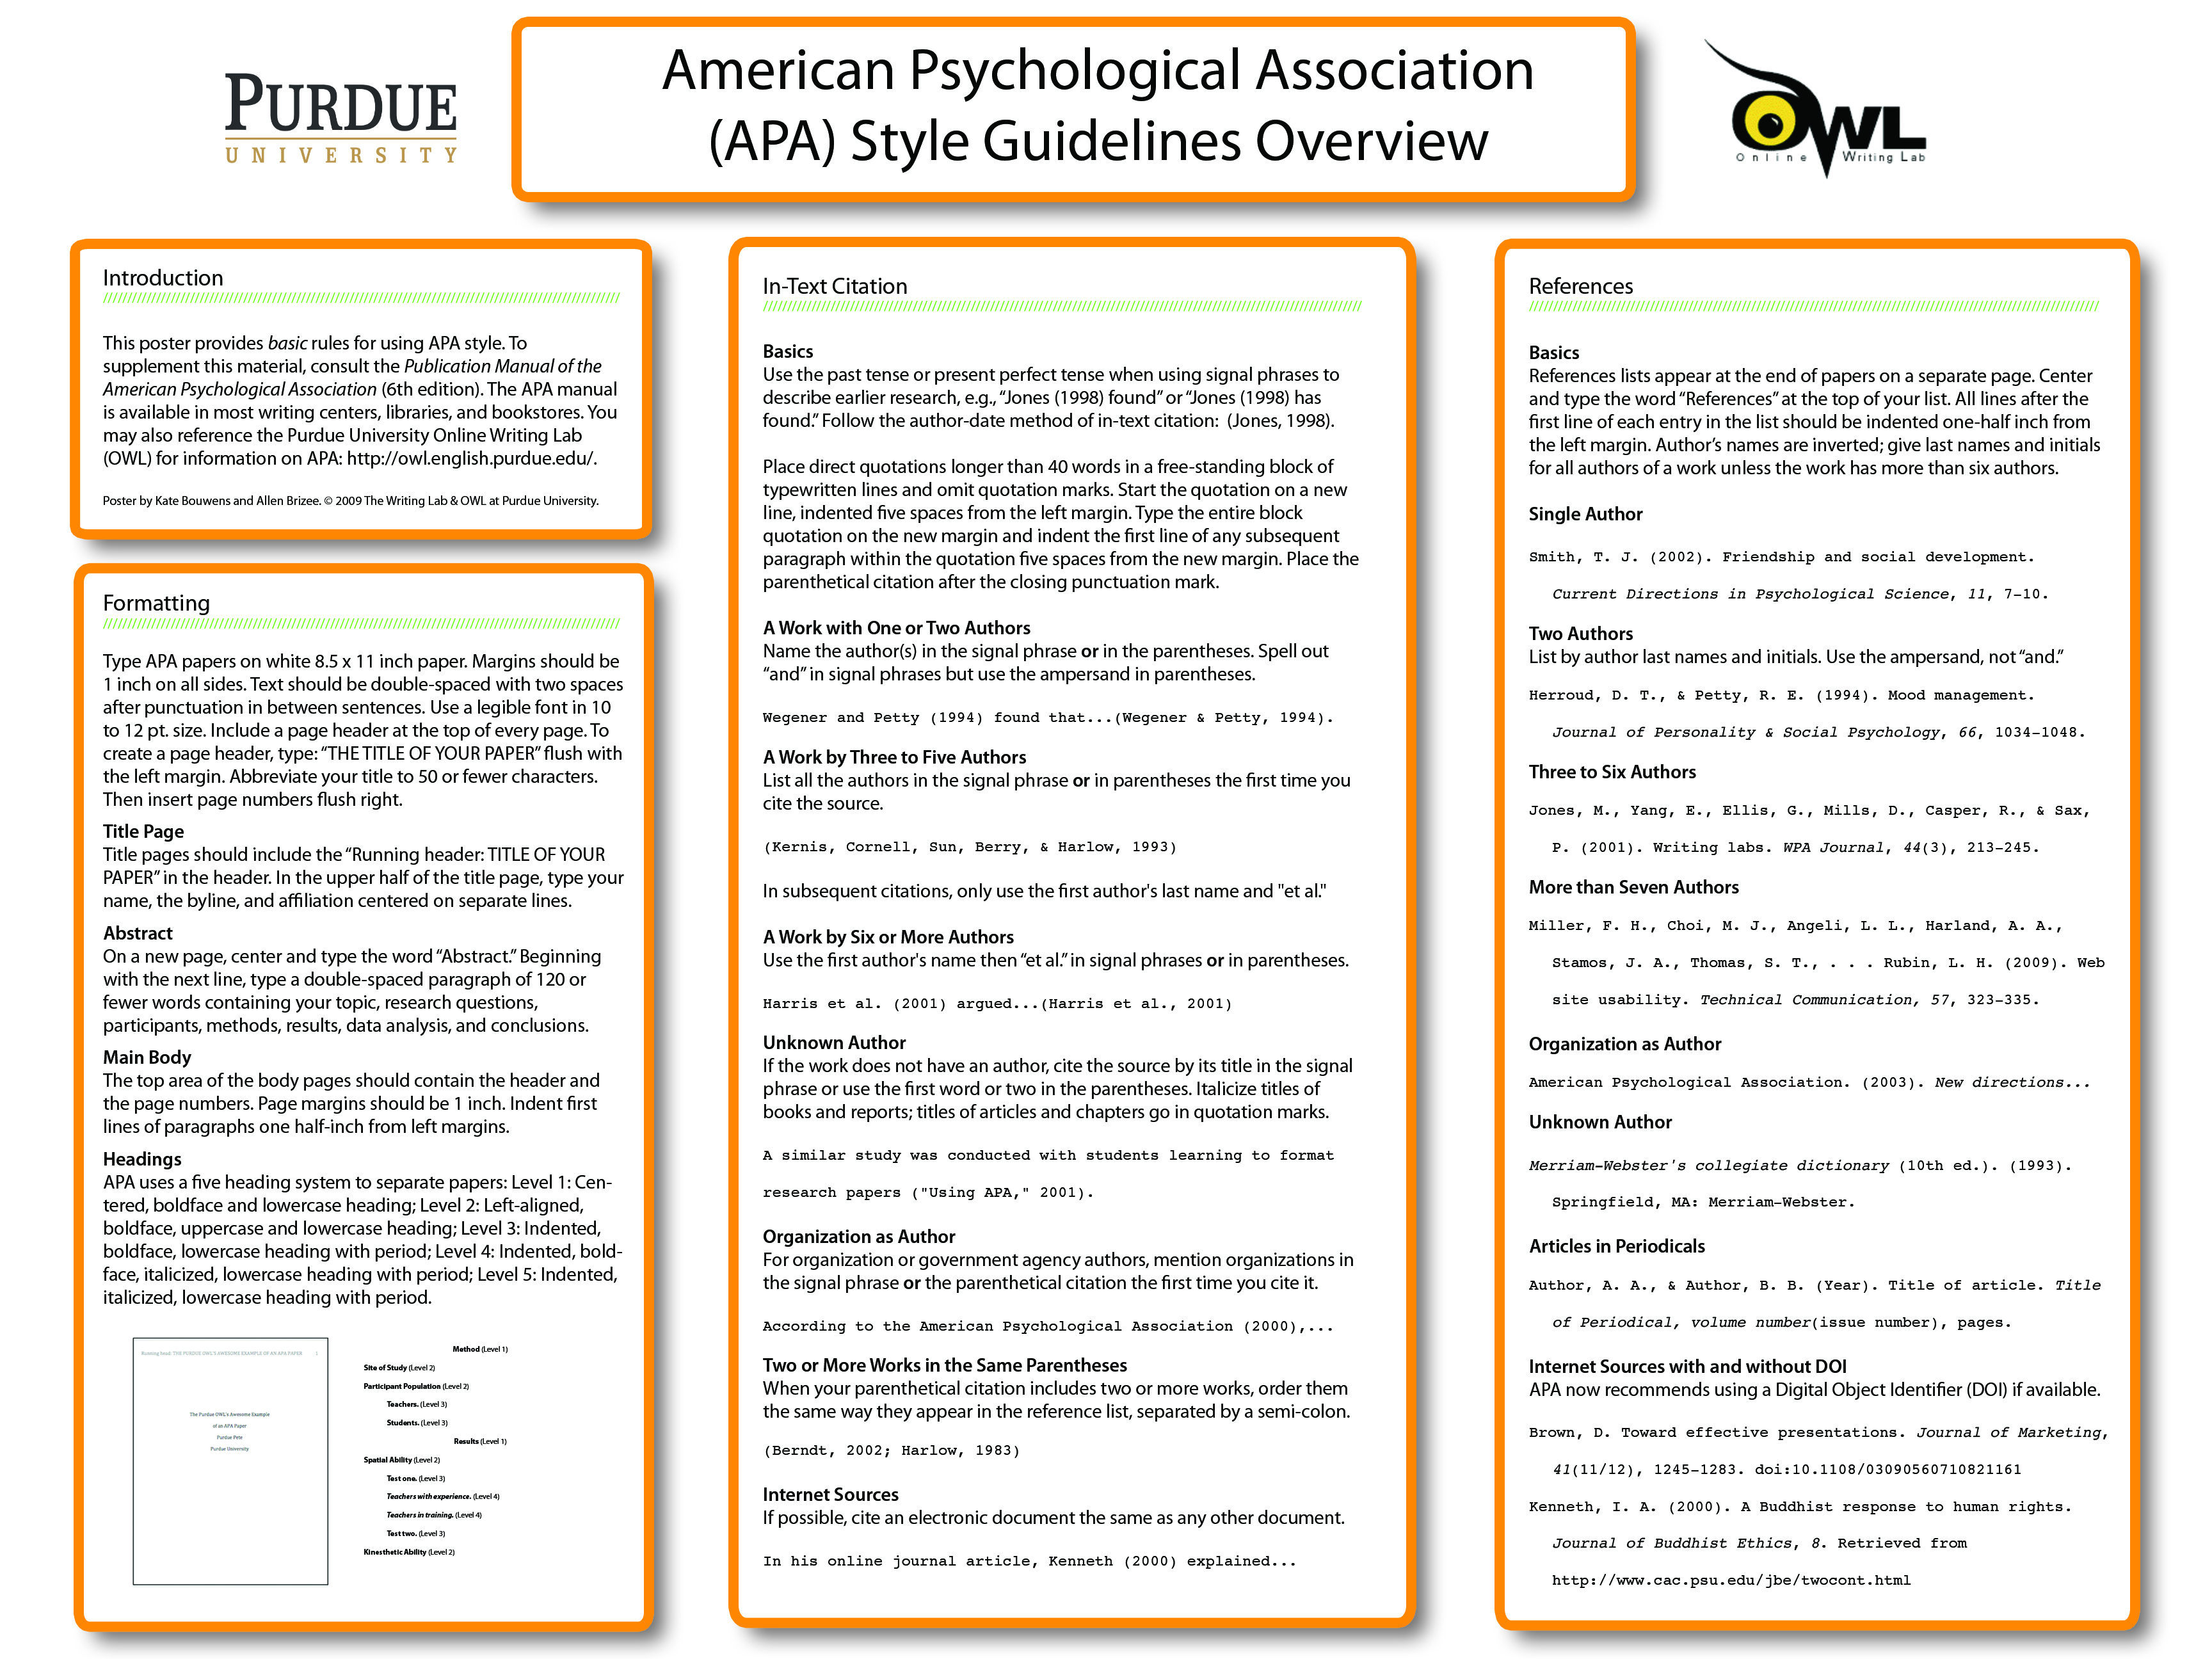 010 Apaposter09 Research Paper Apa Archaicawful Cite Works Cited Citation Generator Full